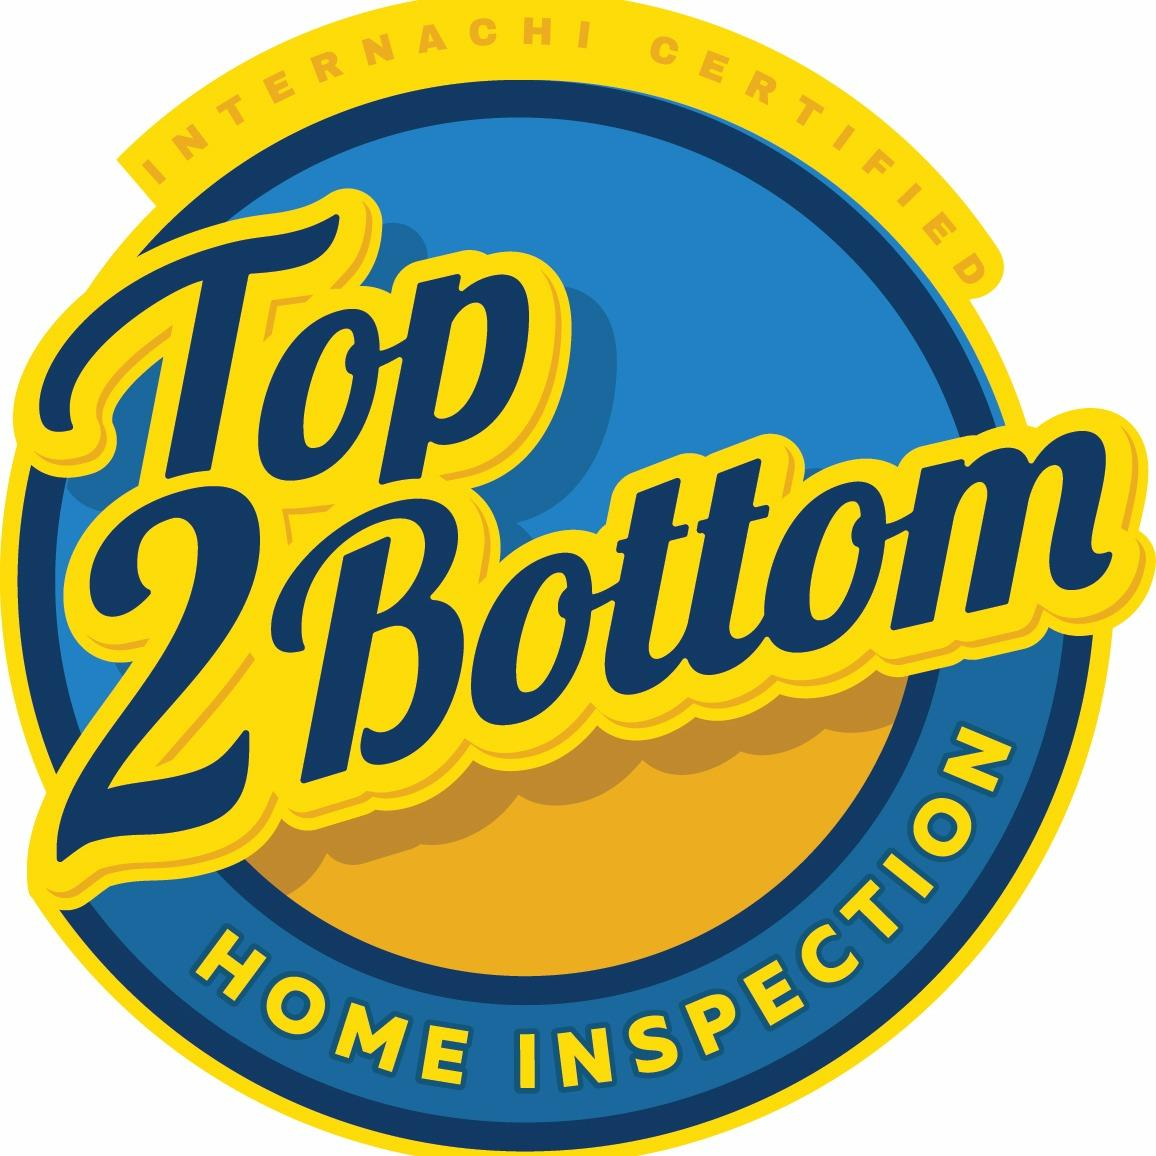 Top 2 Bottom Home Inspections, LLC image 0